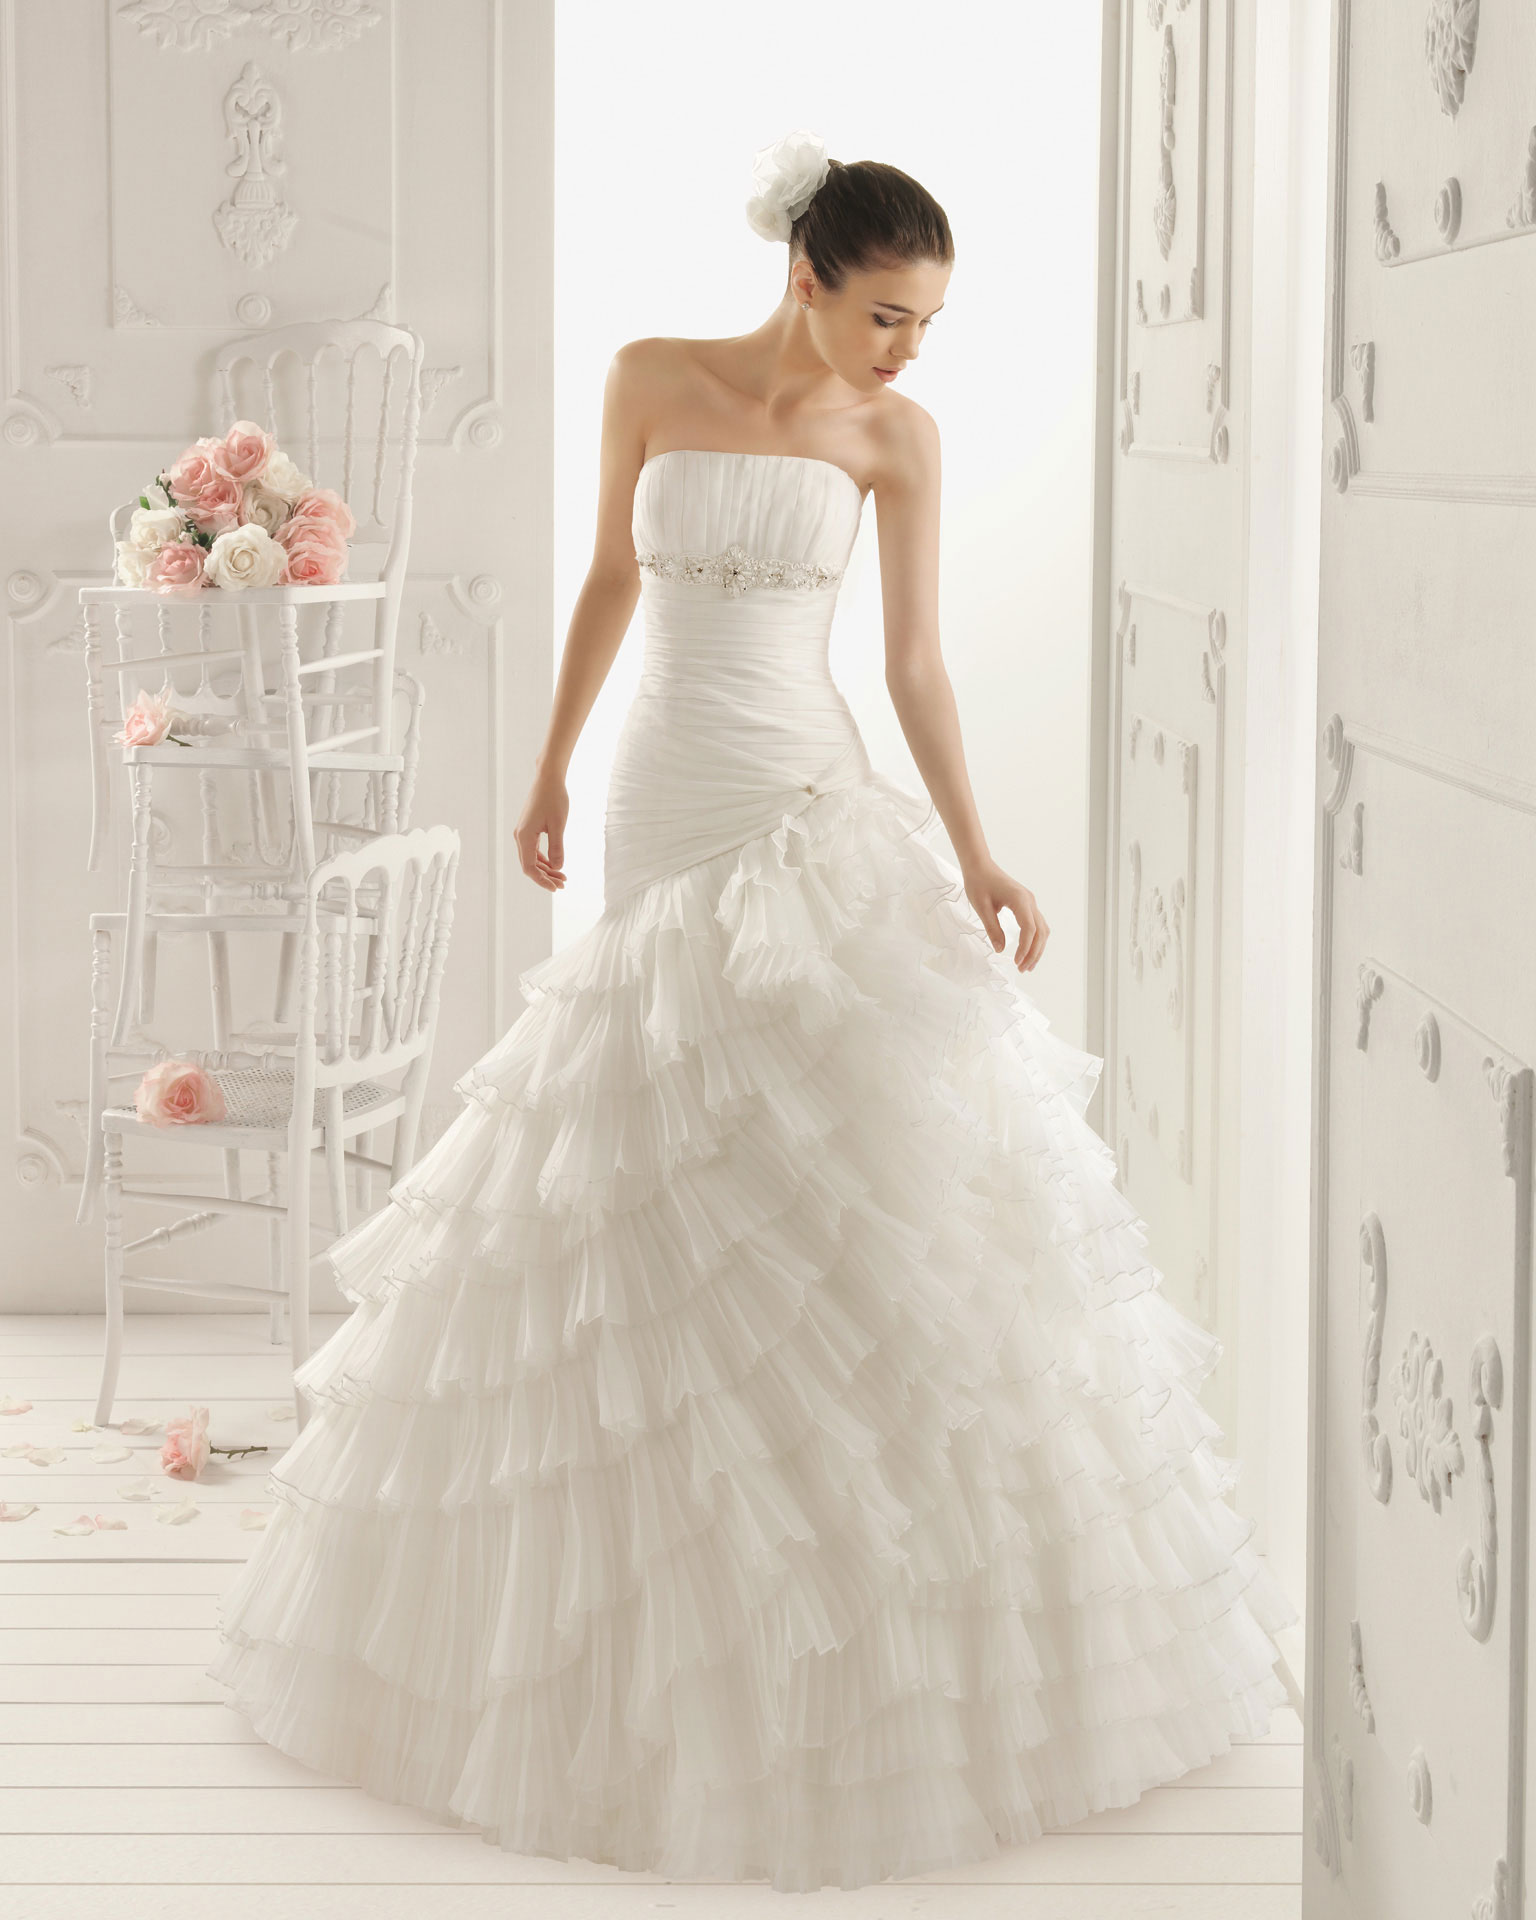 2013 wedding dress aire barcelona bridal gowns roxy for Wedding dresses in barcelona spain